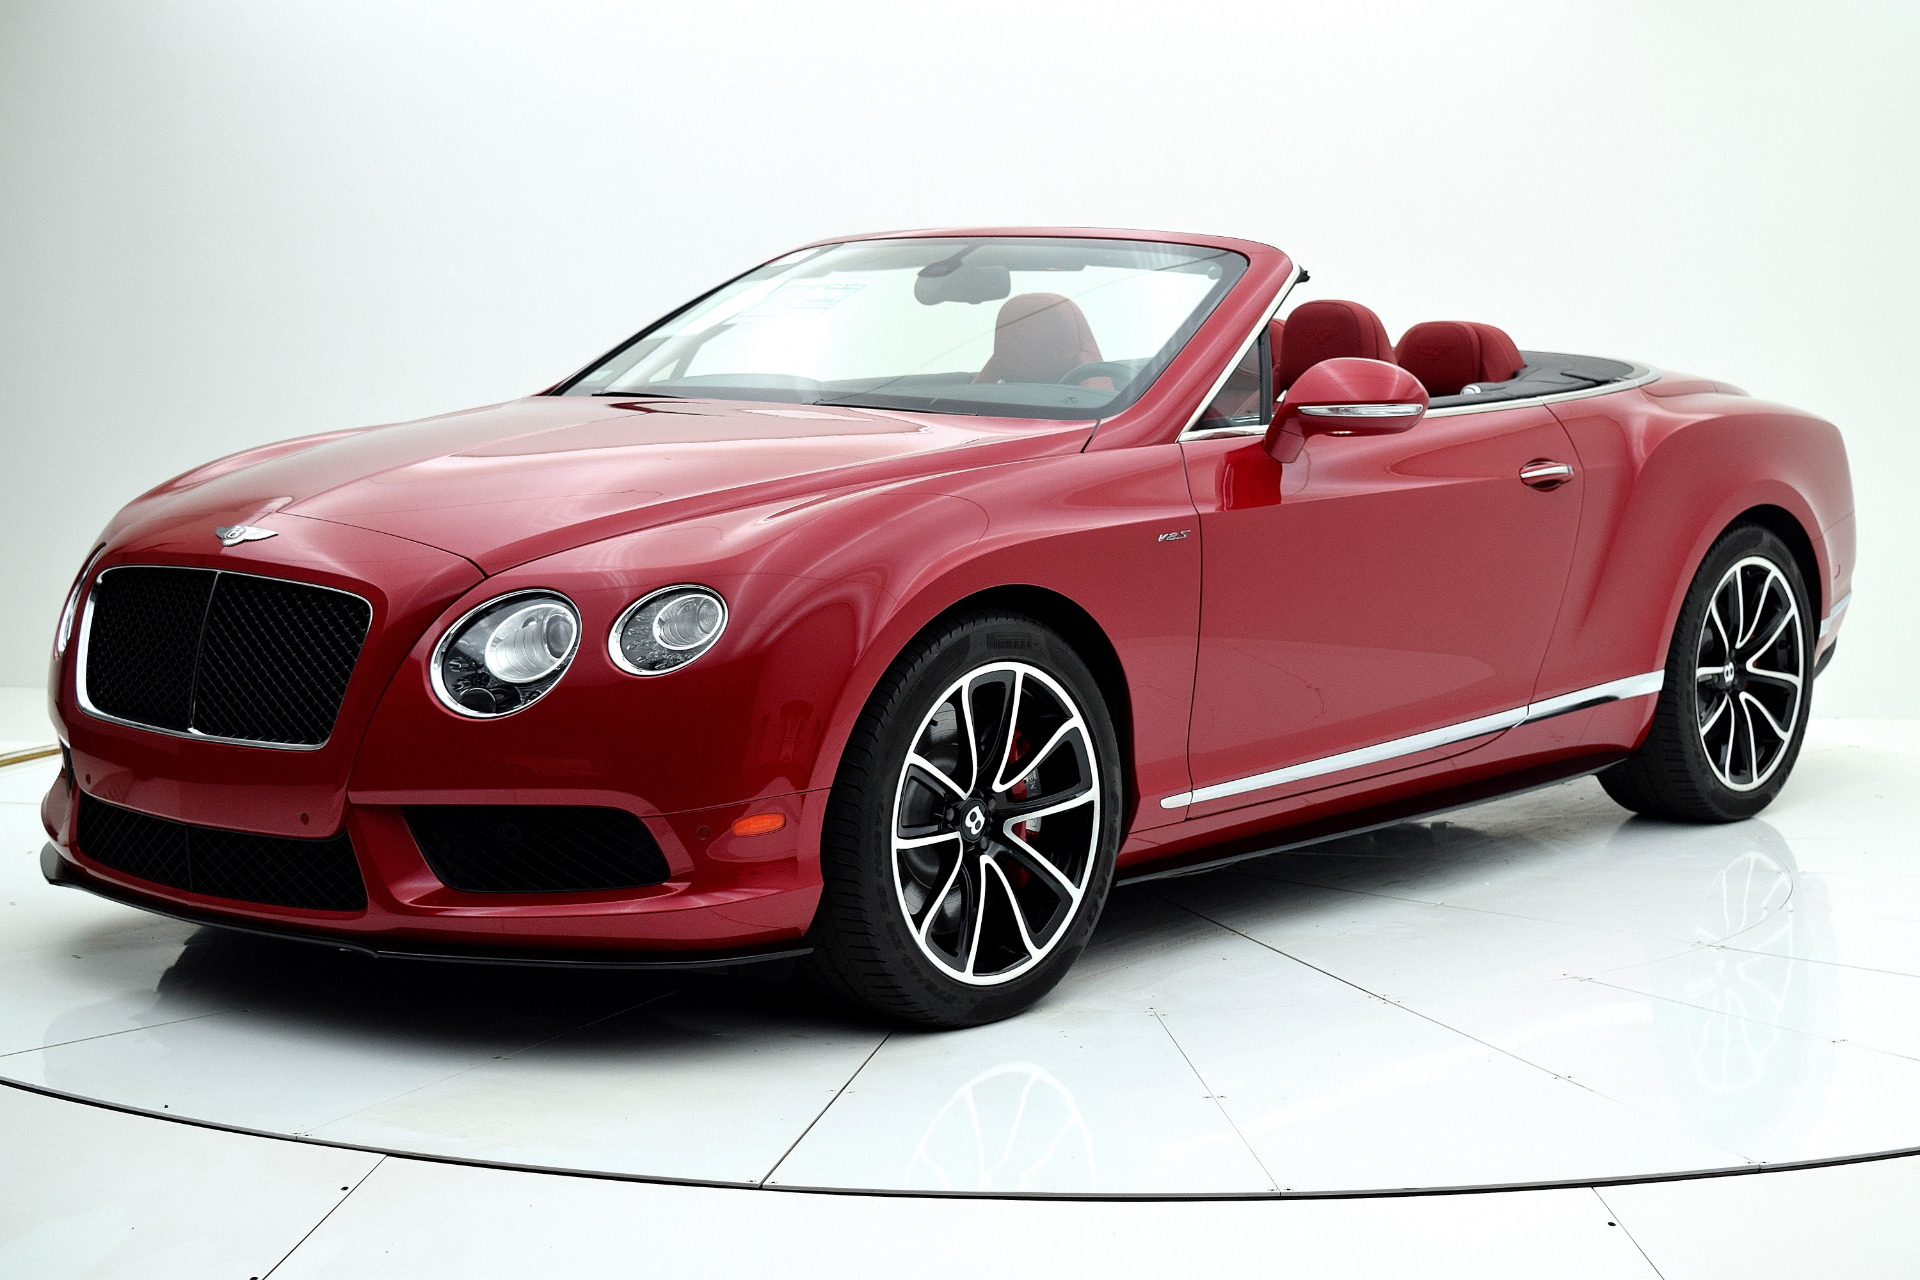 Used 2014 Bentley Continental GT V8 S Convertible for sale Sold at F.C. Kerbeck Aston Martin in Palmyra NJ 08065 2